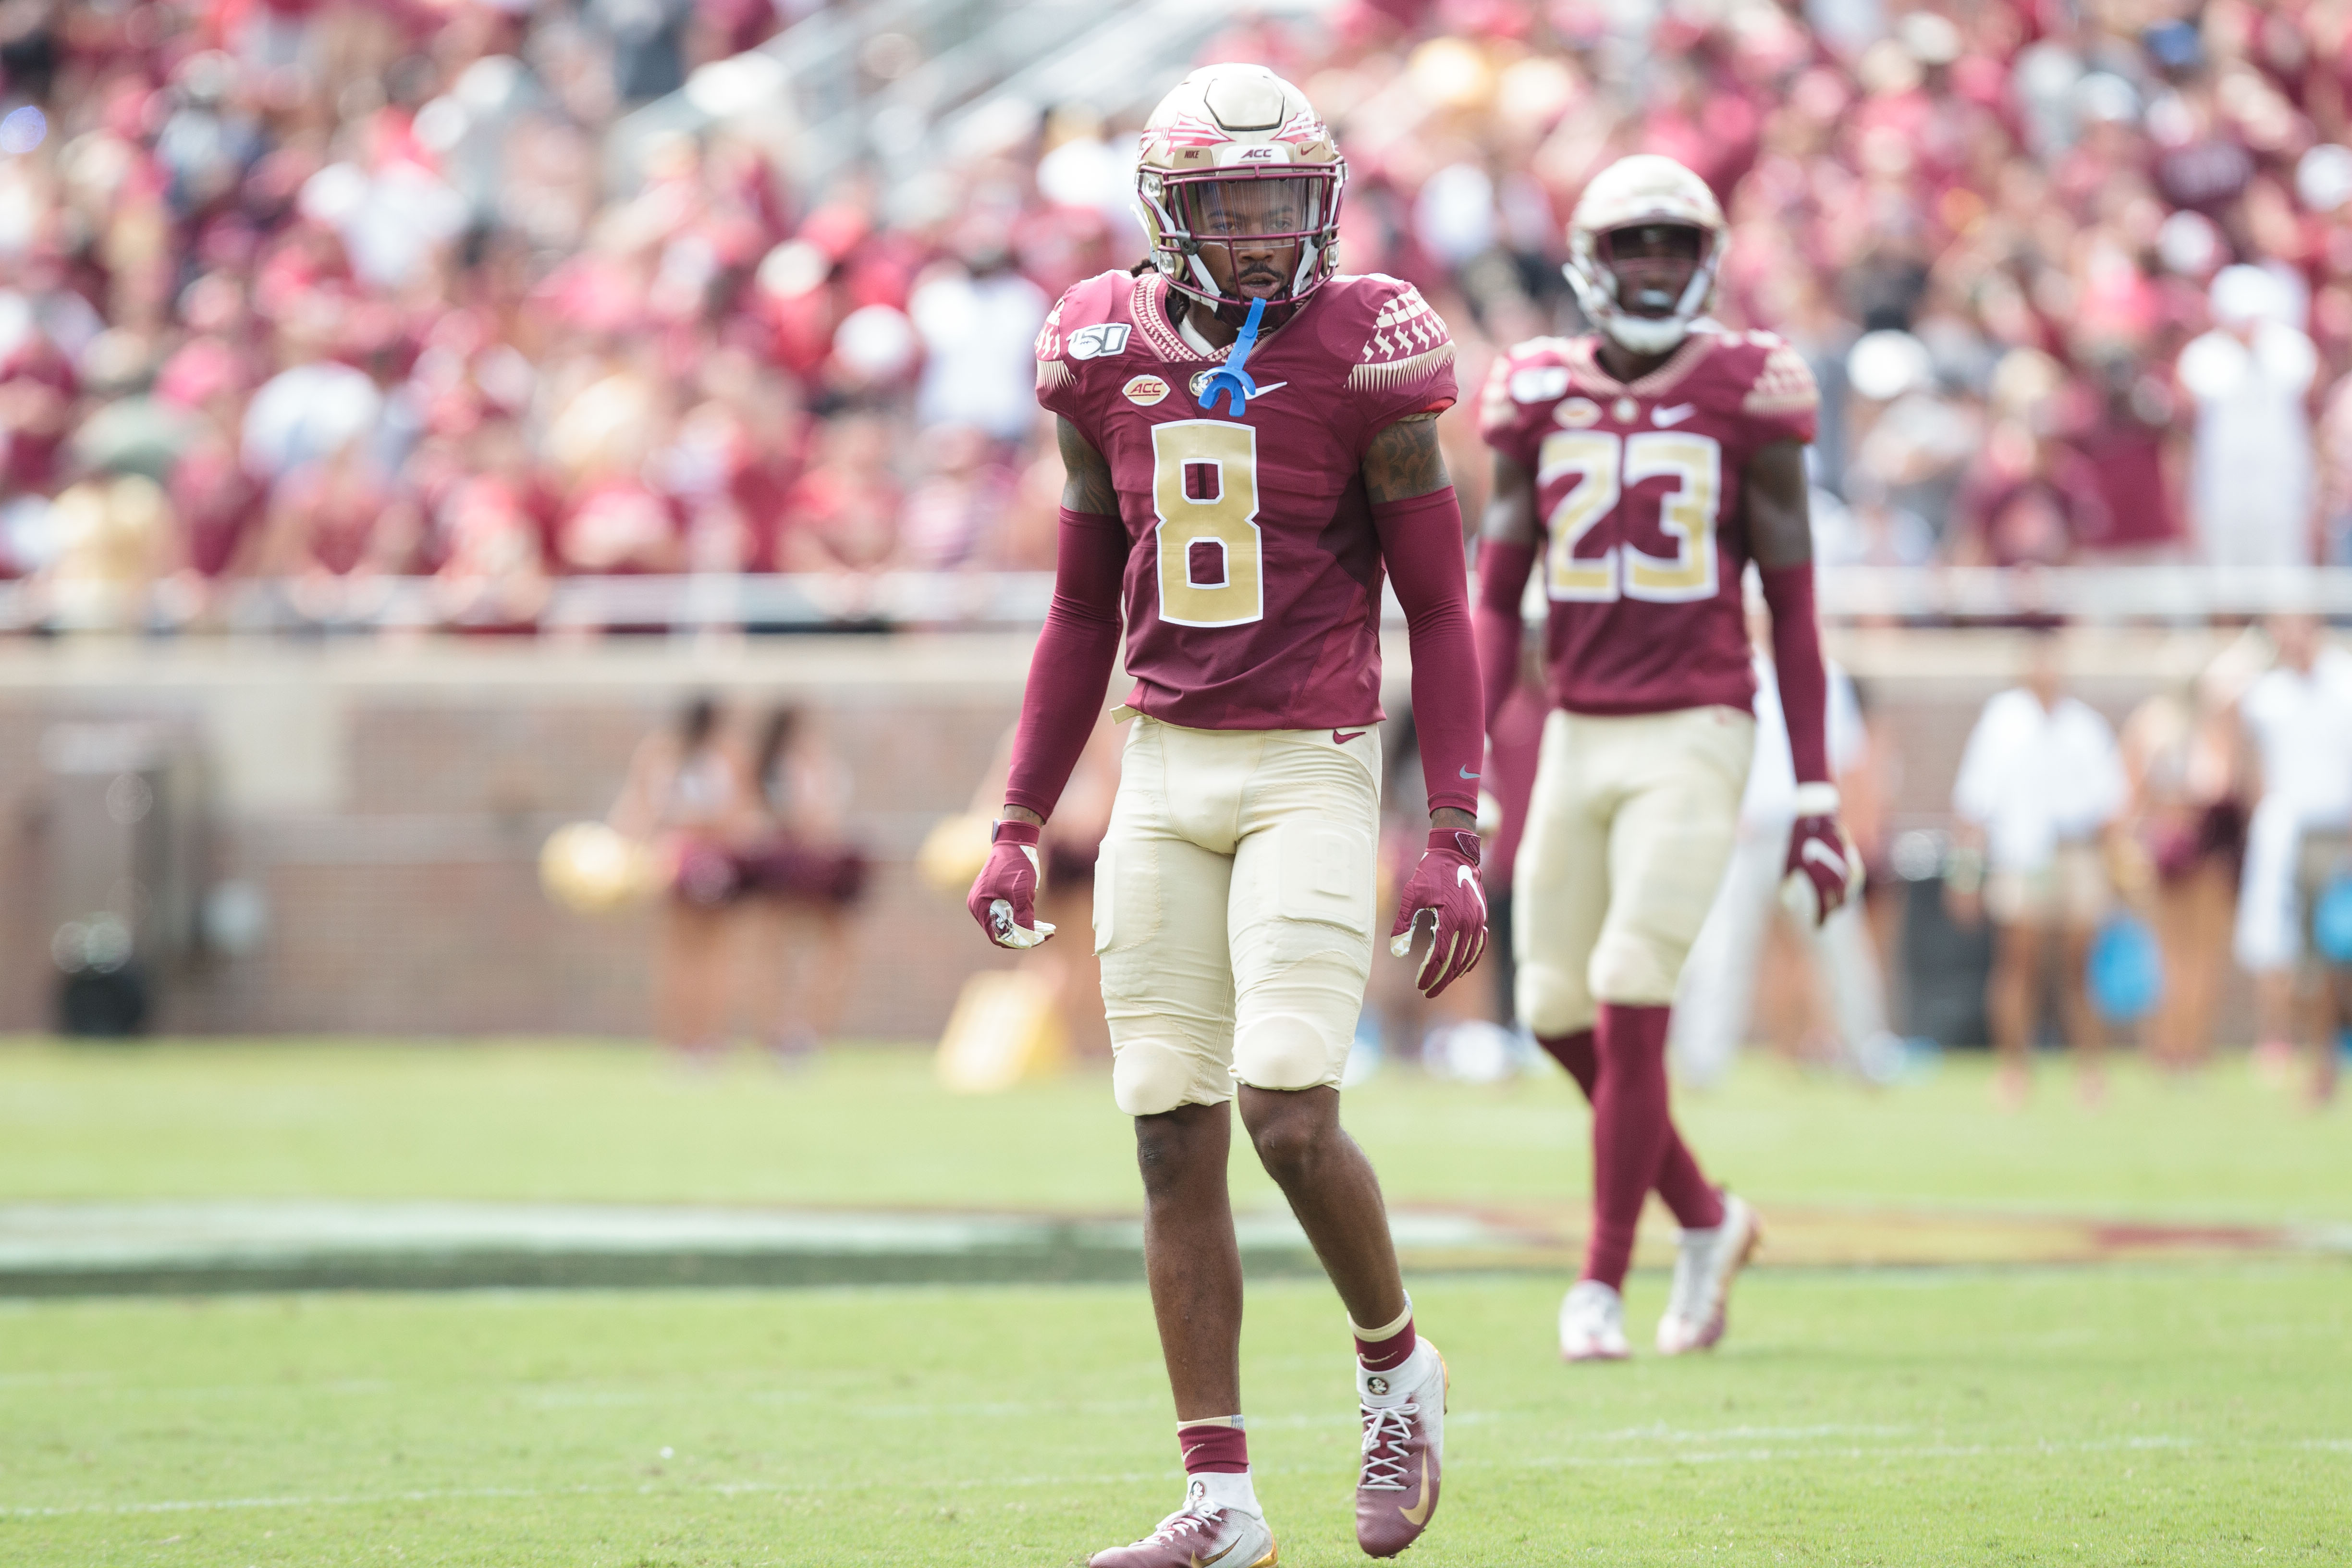 COLLEGE FOOTBALL: AUG 31 Boise State v Florida State